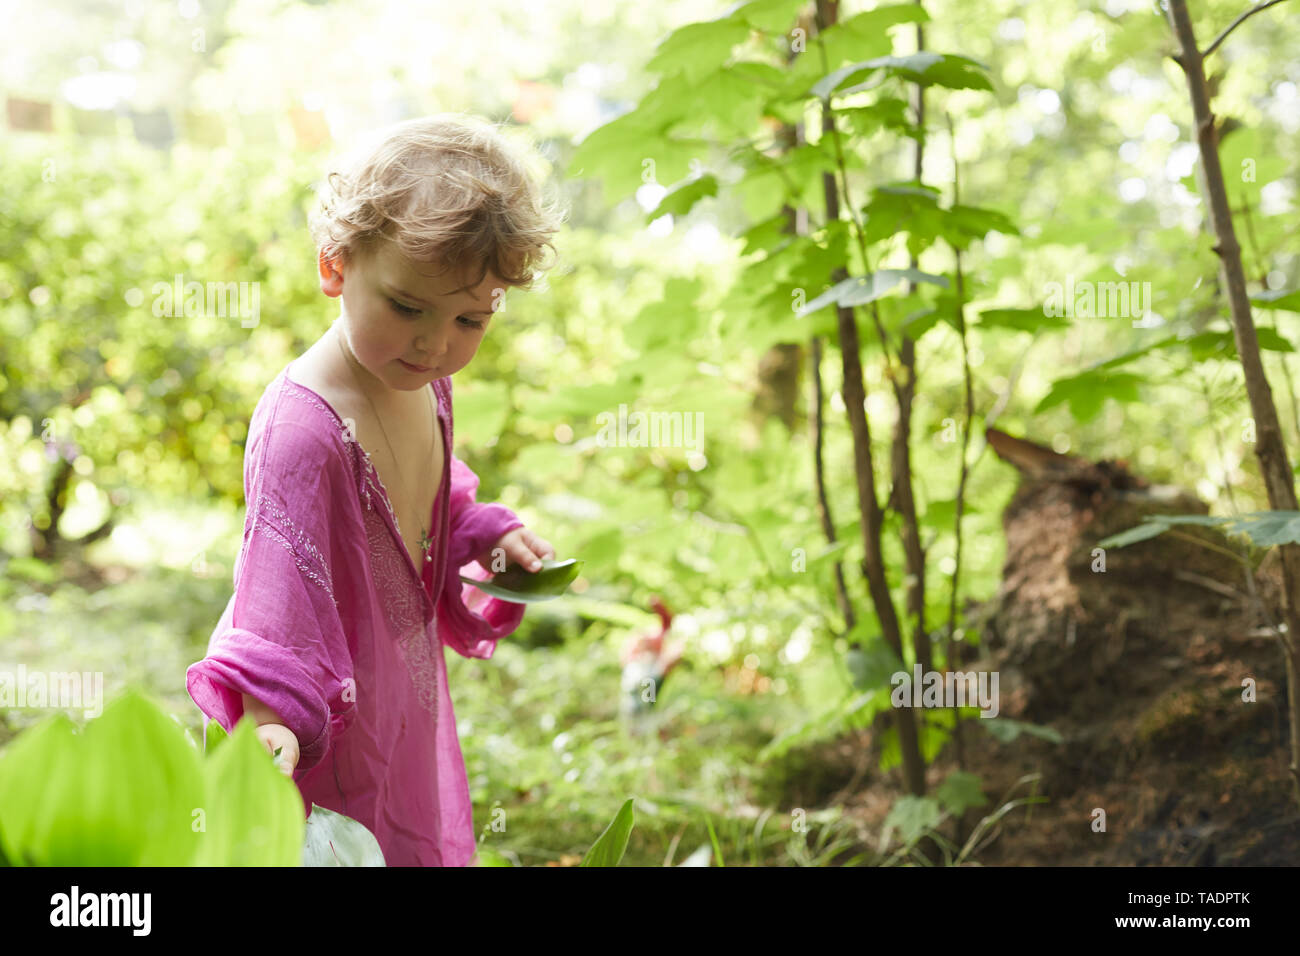 Little girl wearing pink tunic in nature - Stock Image